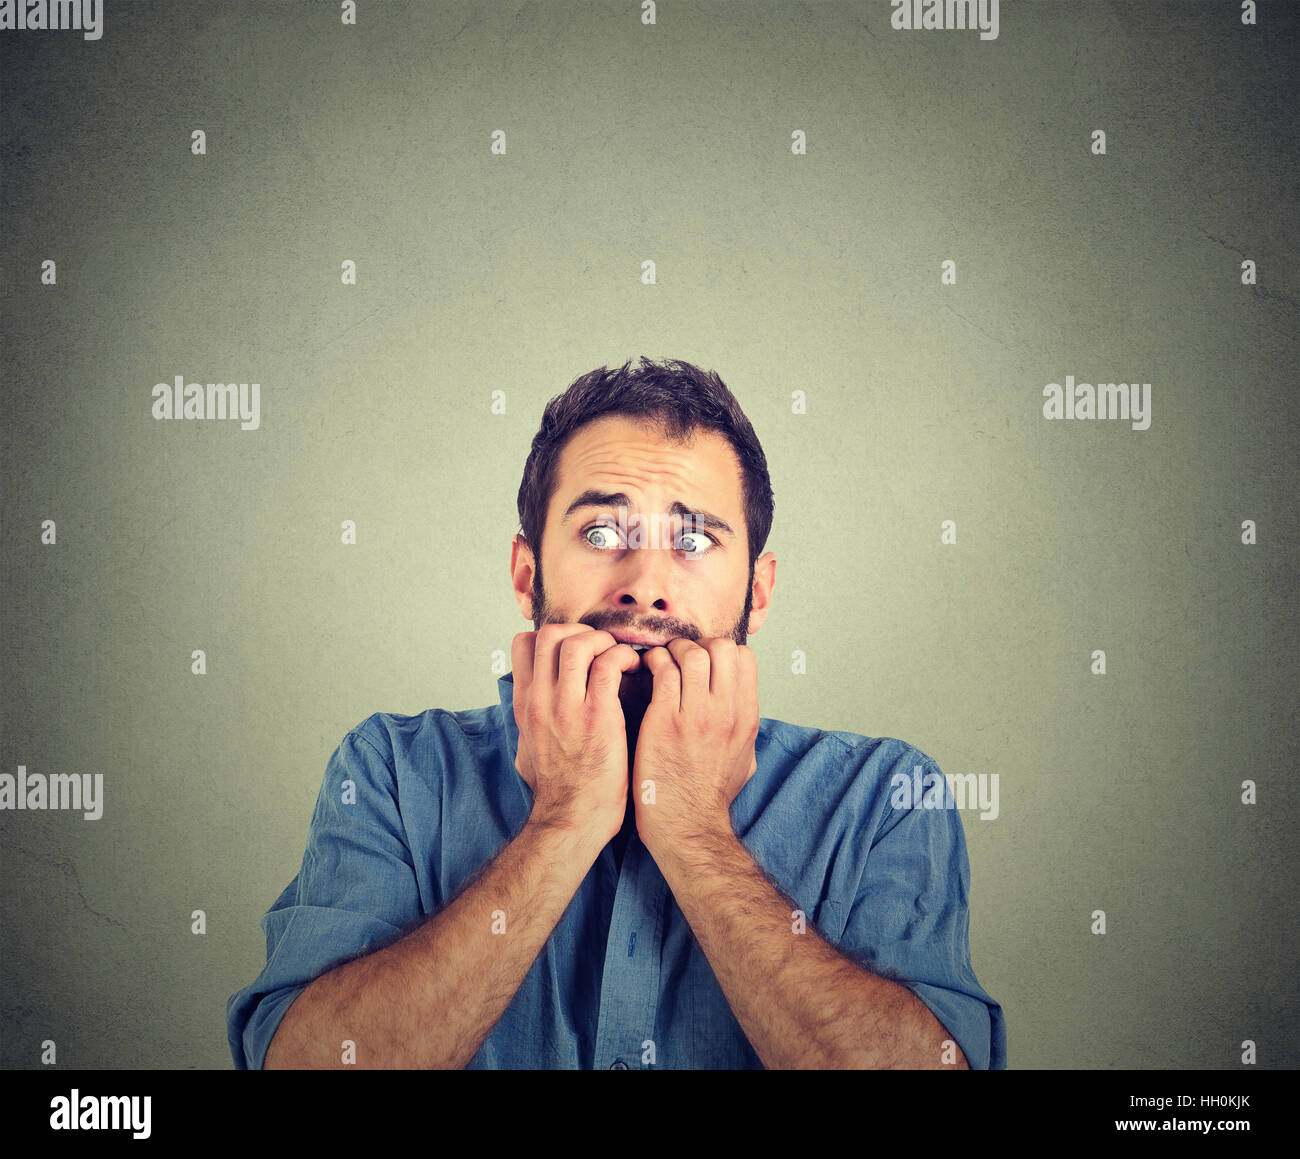 Portrait anxious young man biting his nails fingers freaking out - Stock Image